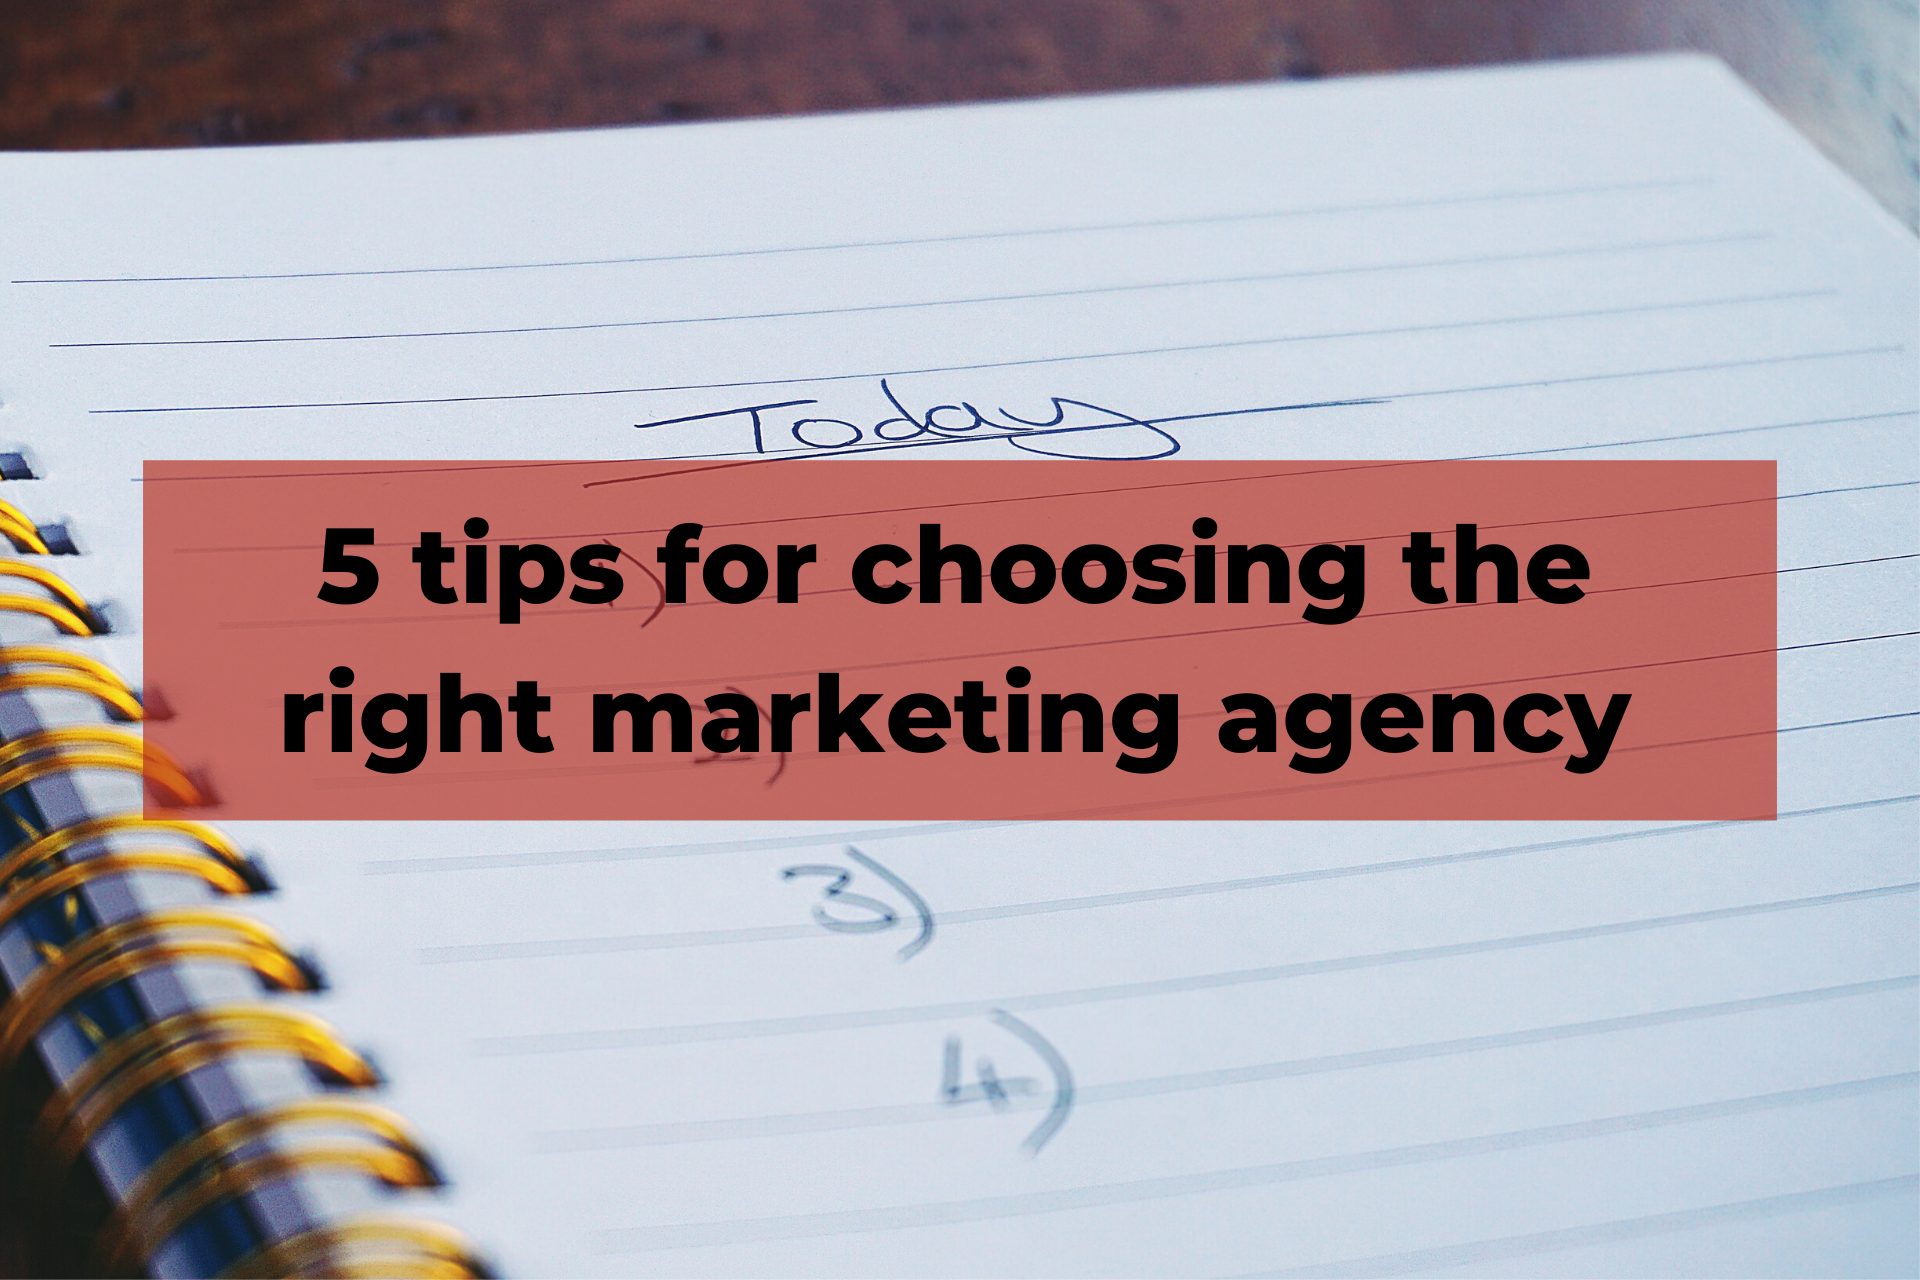 5 tips for choosing the right marketing agency